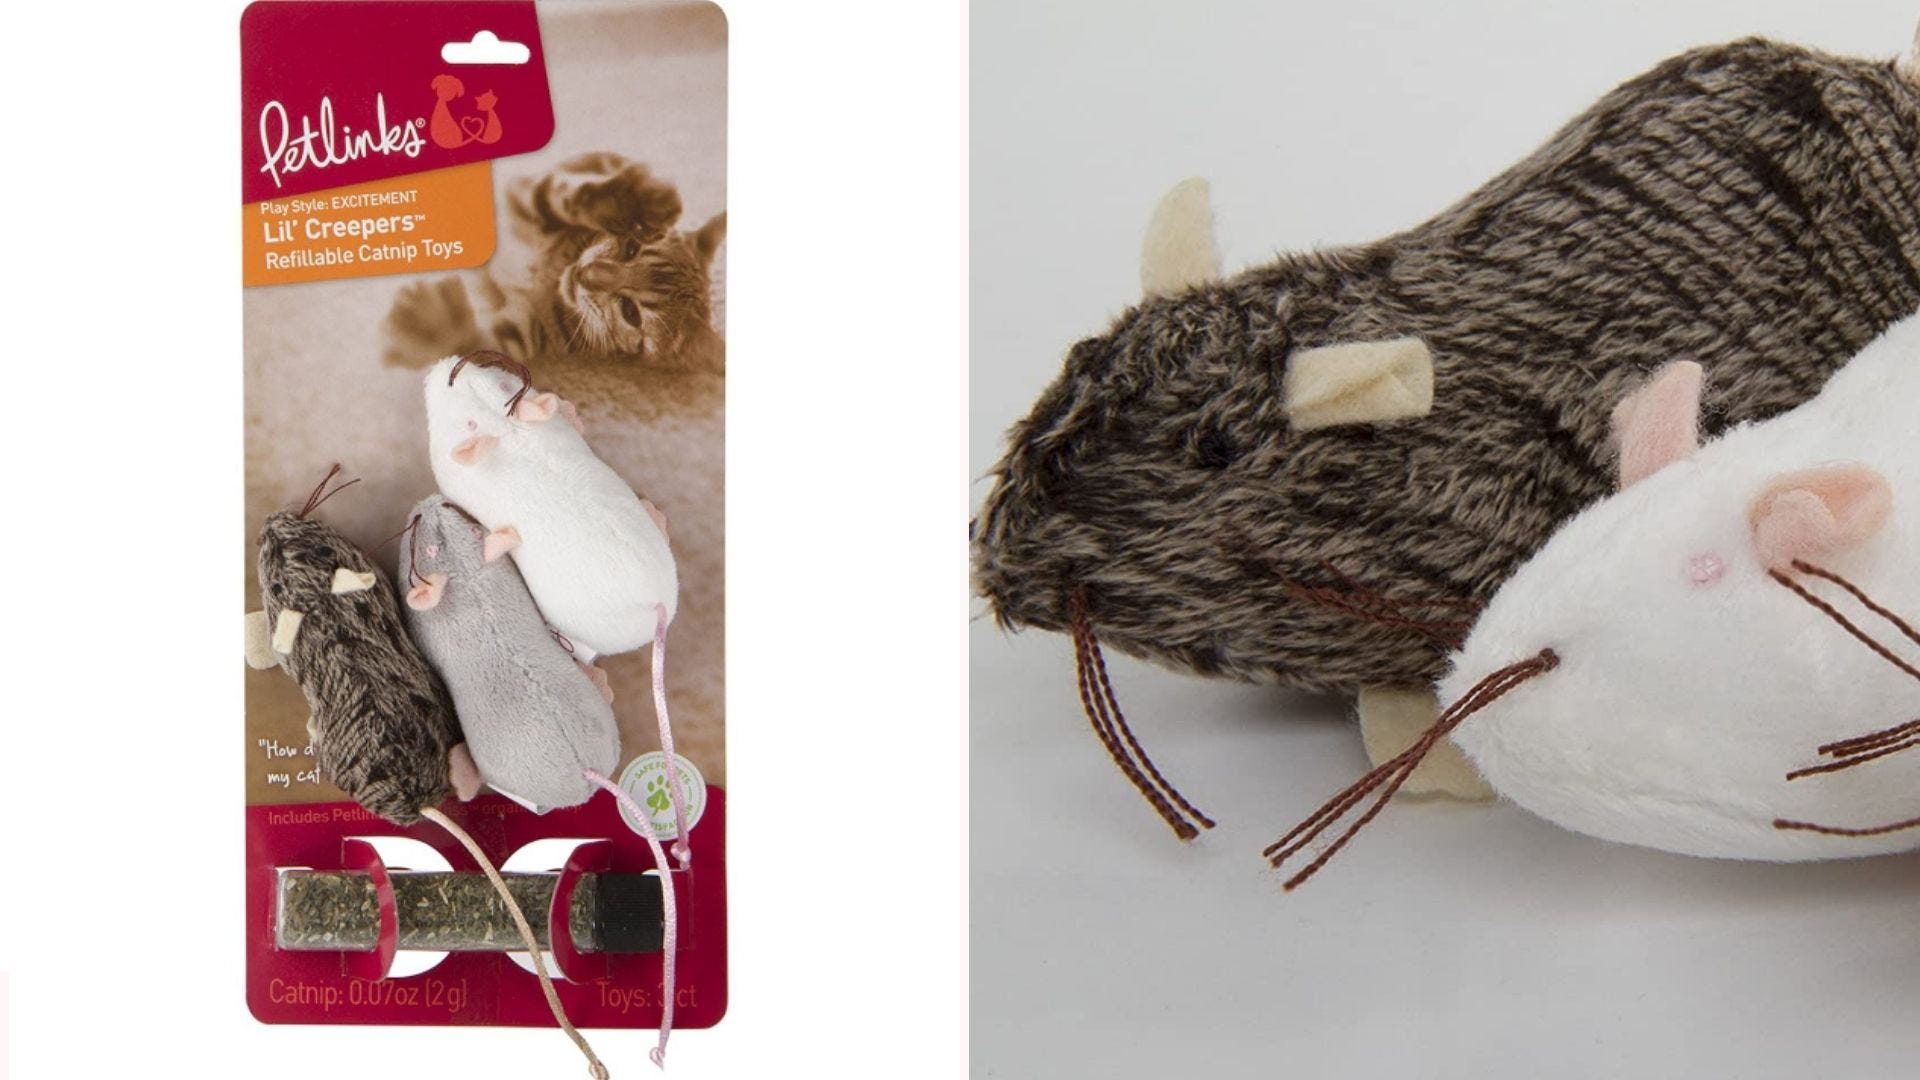 three toy mice (one white, one gray, one brown) for cats